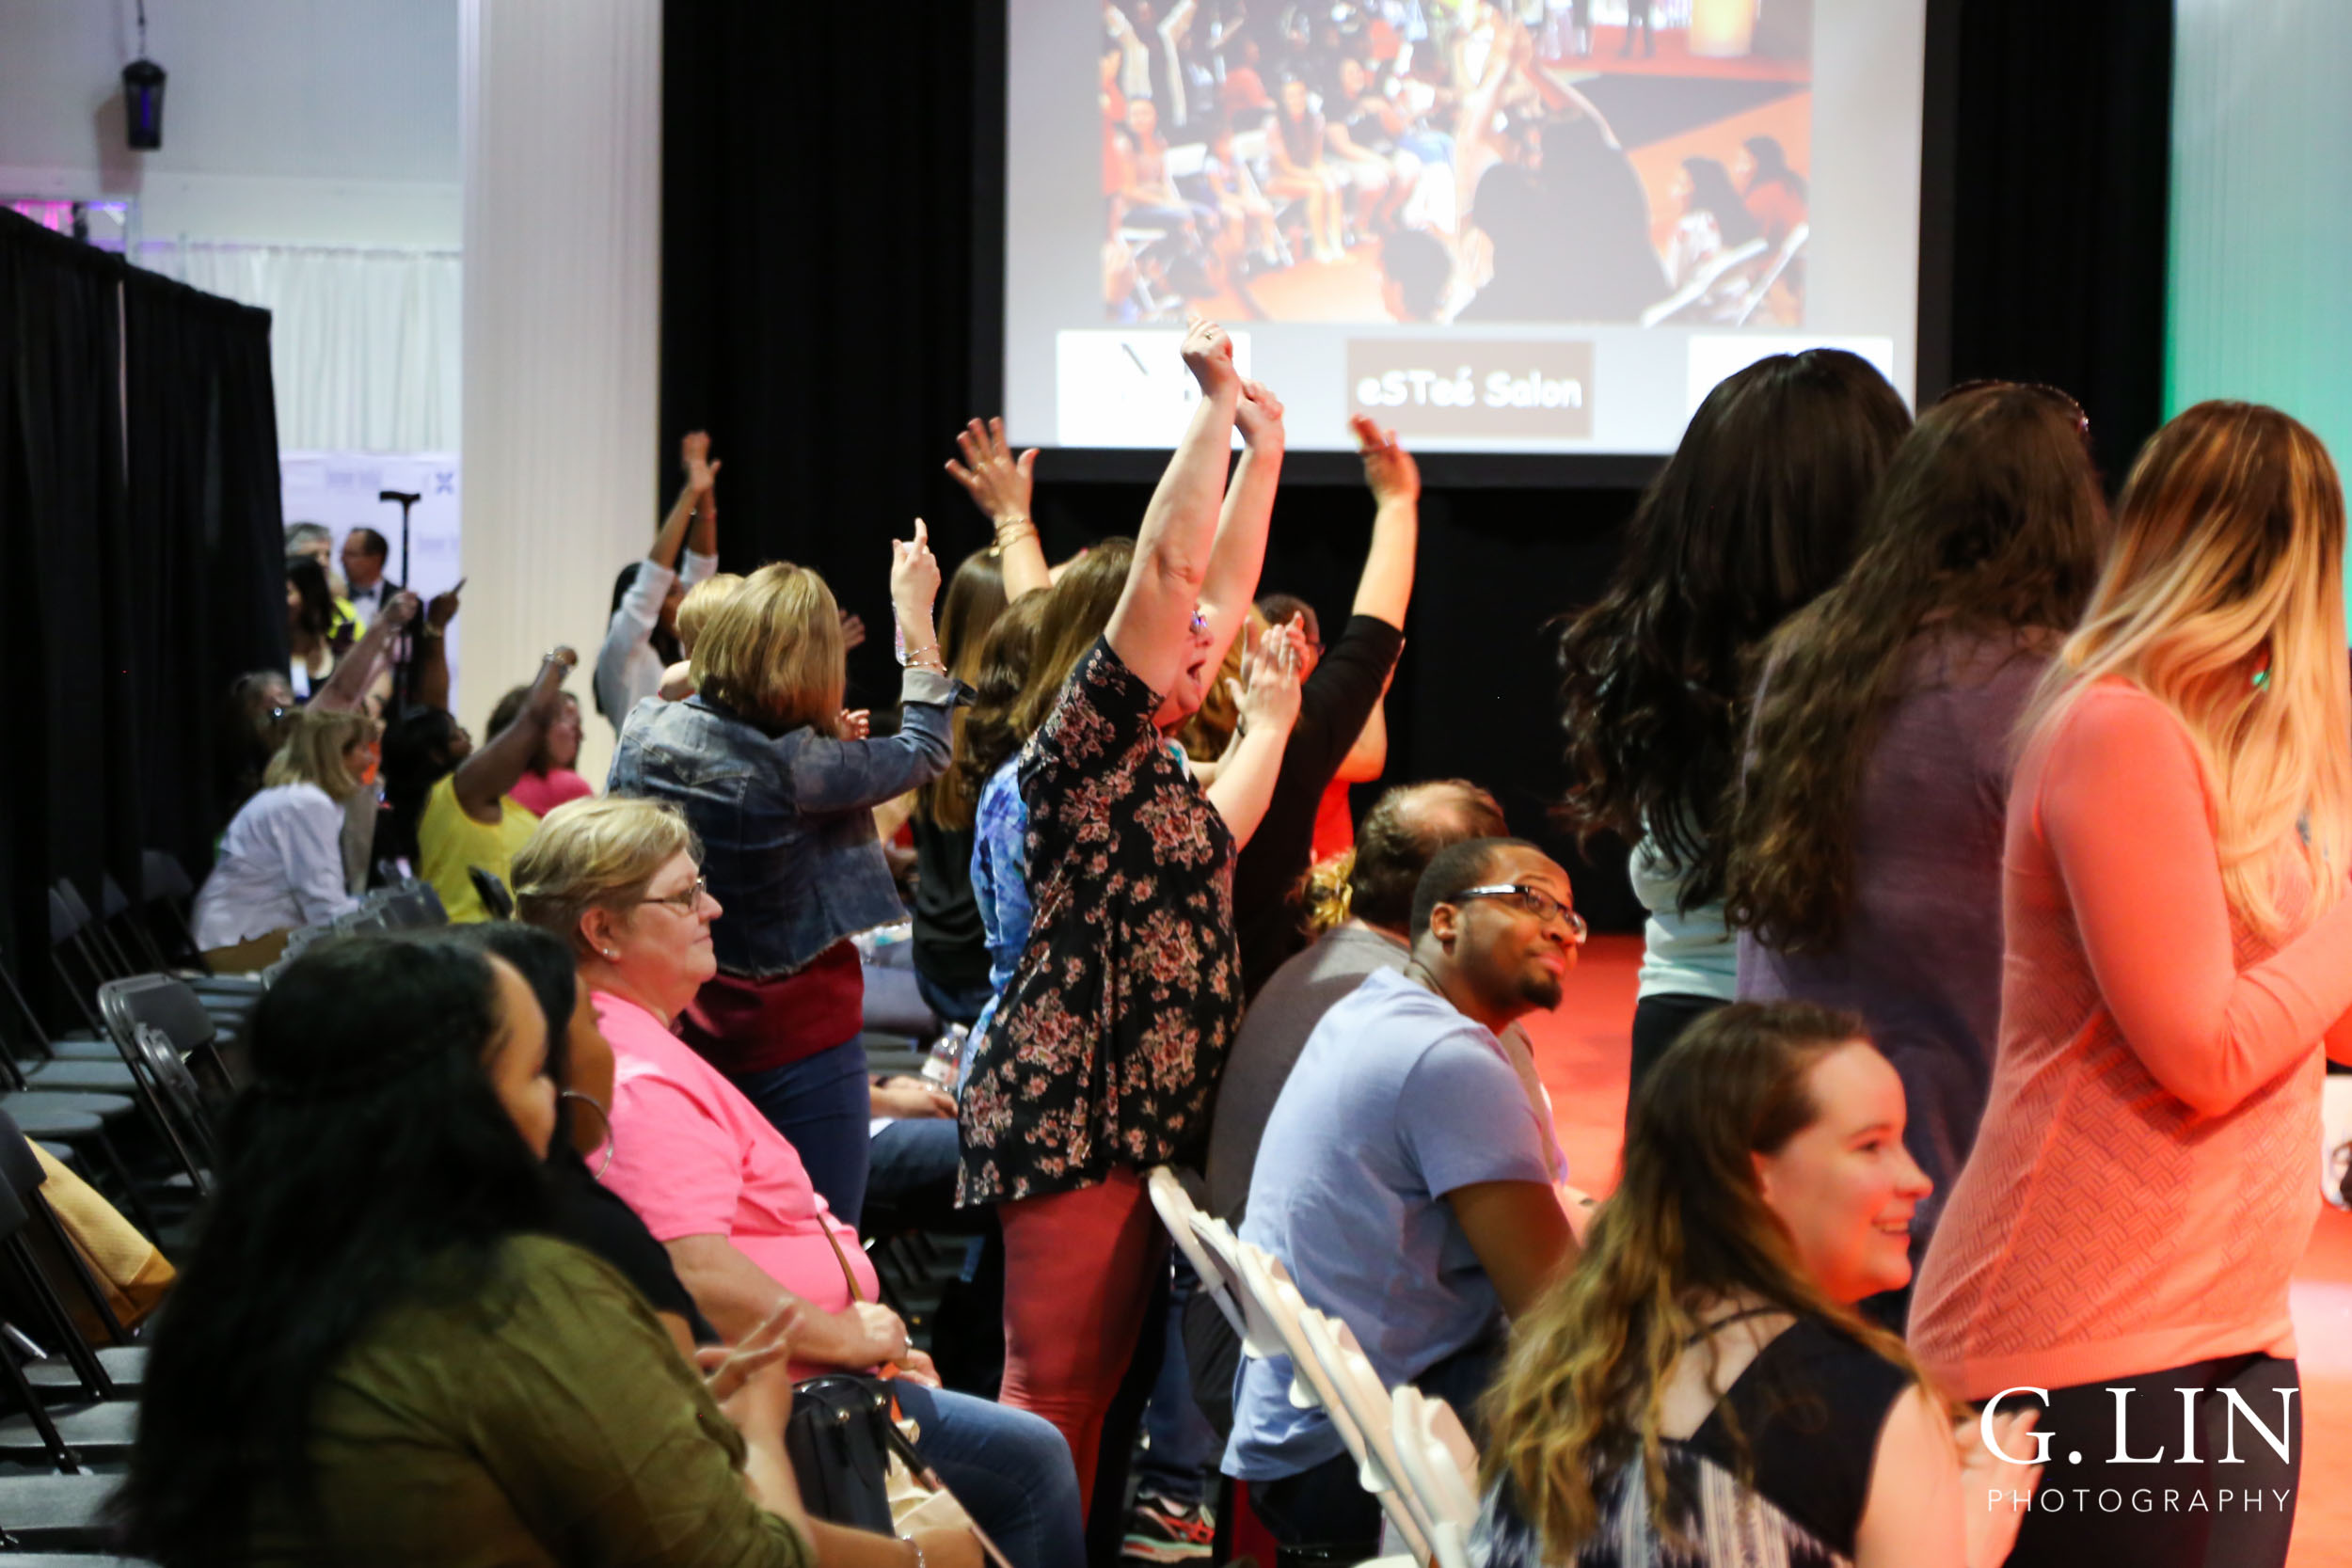 Raleigh Event Photographer | G. Lin Photography | Guests cheering during fashion show